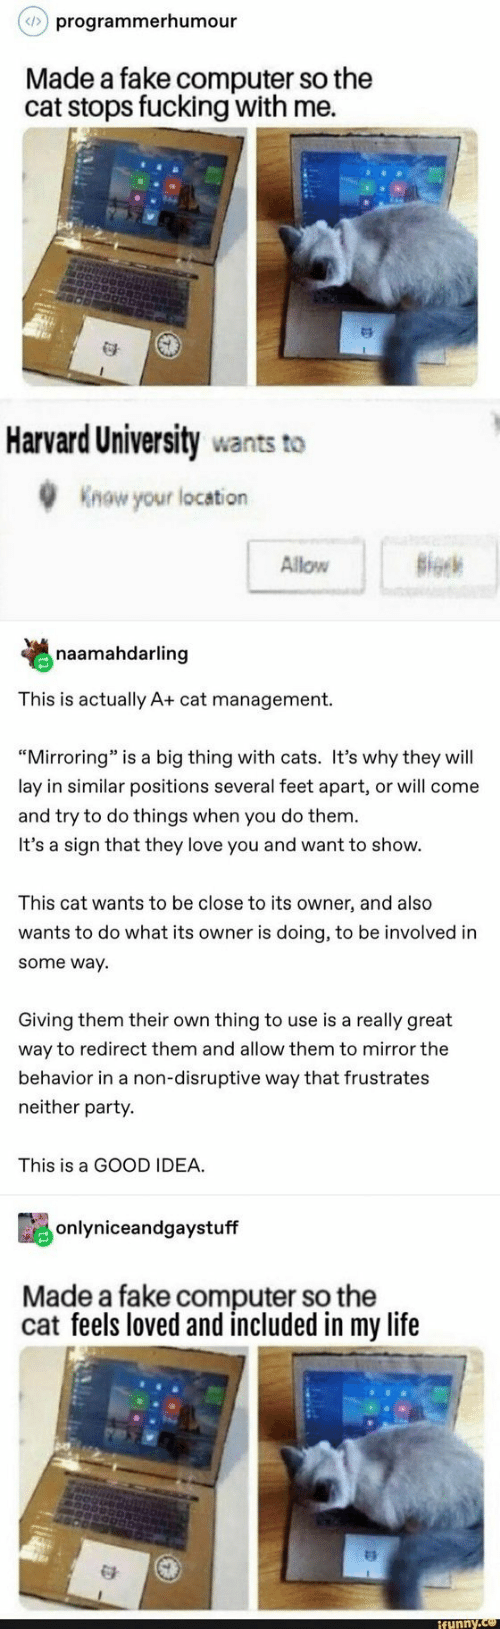 "Cats, Fake, and Fucking: programmerhumour  Made a fake computer so the  cat stops fucking with me.  Harvard University wants to  Know your location  Allow B  naamahdarling  This is actually A+ cat management.  ""Mirroring"" is a big thing with cats. It's why they will  lay in similar positions several feet apart, or will come  and try to do things when you do them  It's a sign that they love you and want to show.  This cat wants to be close to its owner, and also  wants to do what its owner is doing, to be involved in  some way  Giving them their own thing to use is a really great  way to redirect them and allow them to mirror the  behavior in a non-disruptive way that frustrates  neither party.  This is a GOOD IDEA.  onlyniceandgaystuff  Made a fake computer so the  cat feels loved and included in my life  funny"